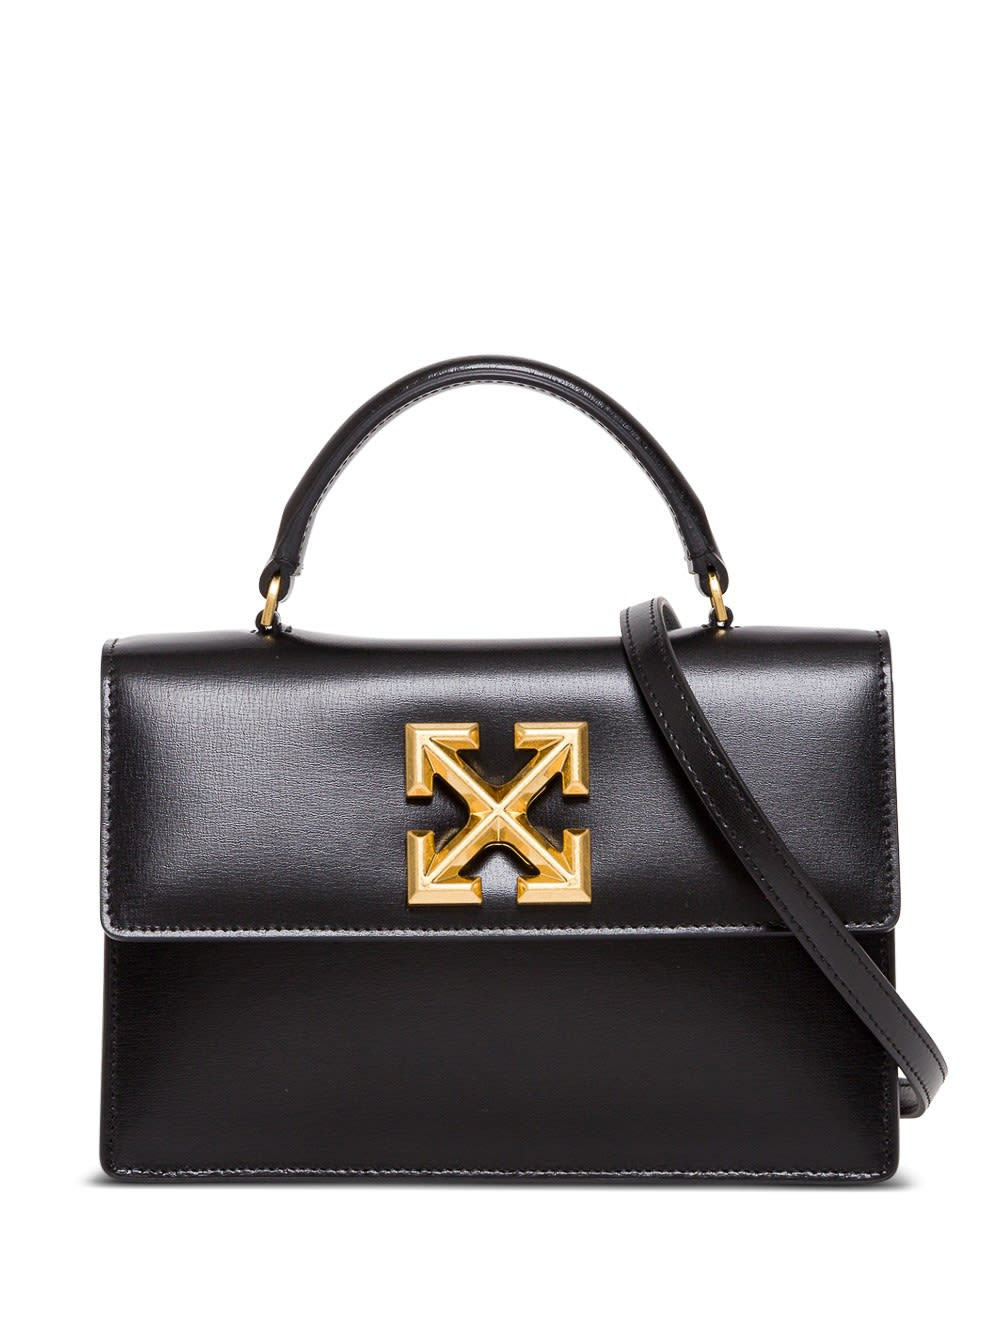 Off-white Twist Jitney 1.4 Crossbody Bag In Black Leather